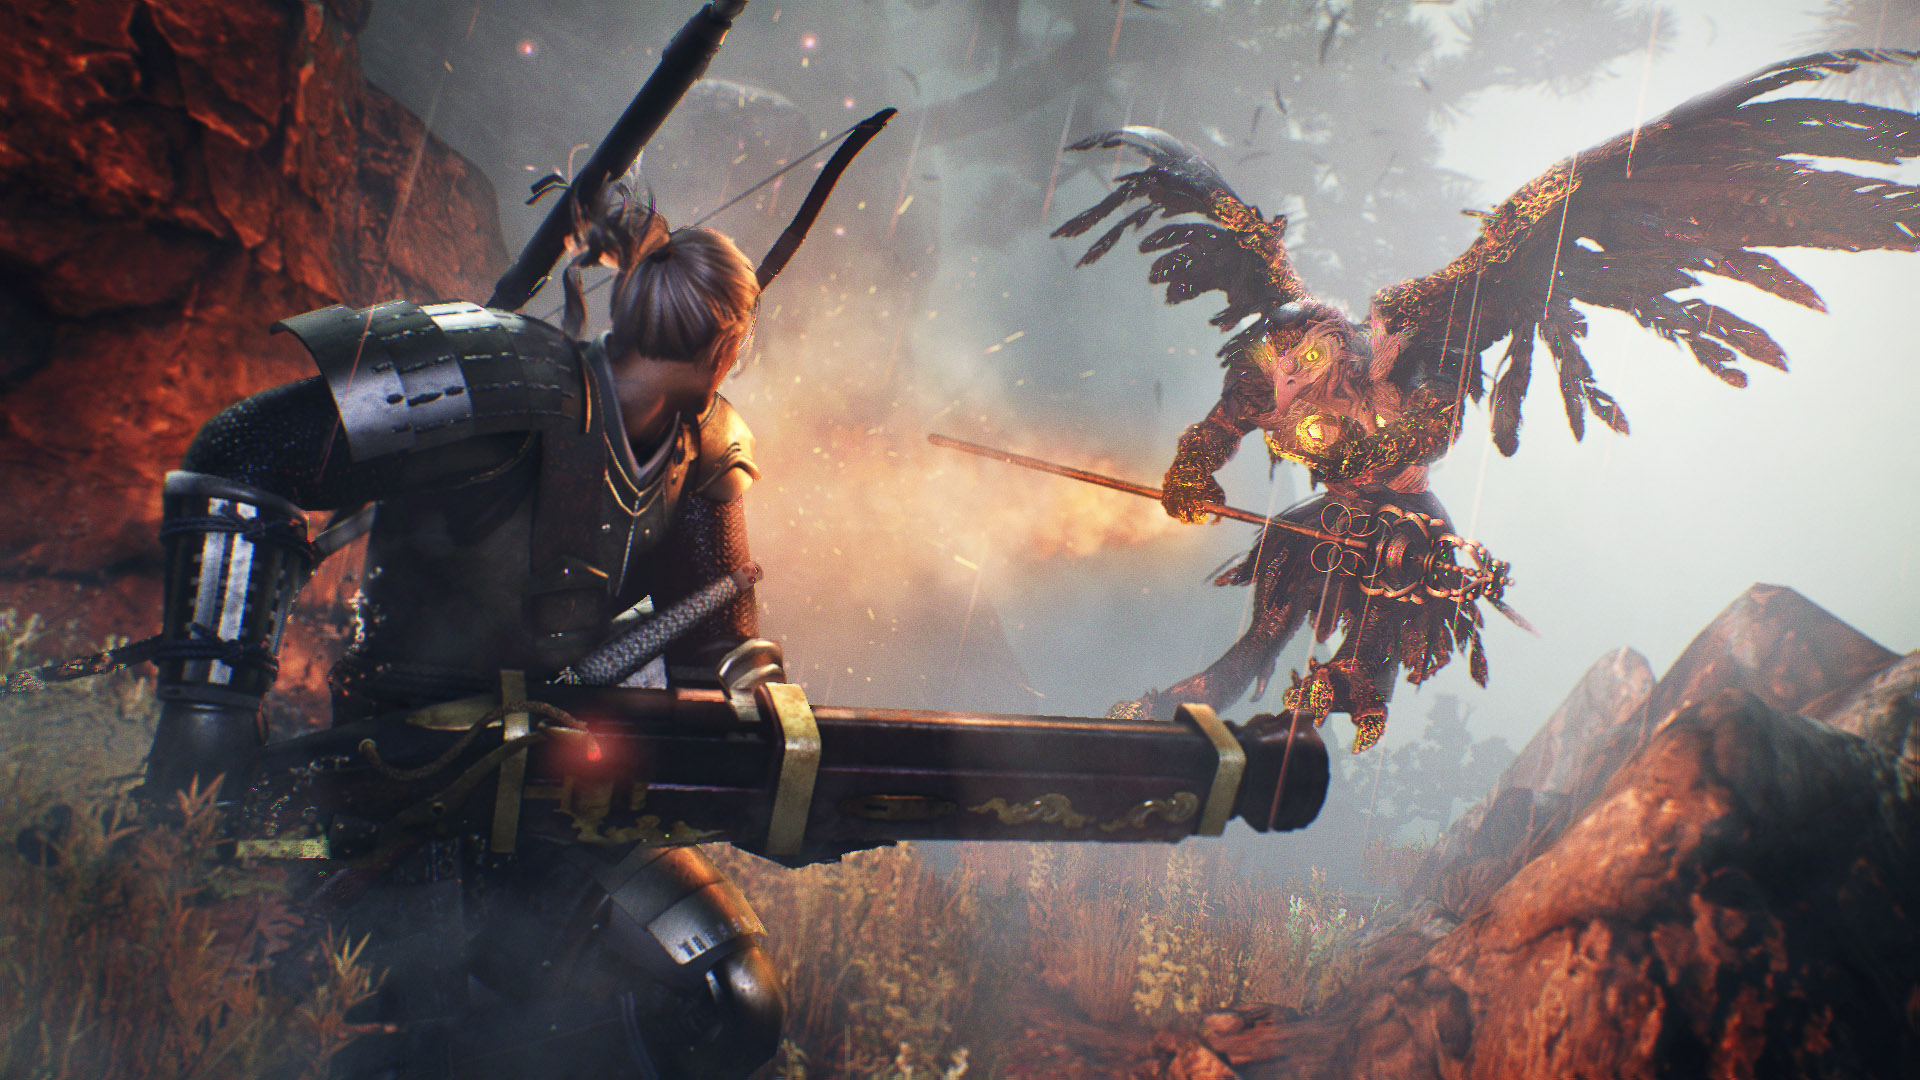 In this screenshot from Nioh, protagonist William faces away from the camera, toward a large bird creature known as a tengu. William carries a large, antique-looking gun of some sort, while the tengu, floating just off the ground, has a massive, ornate st